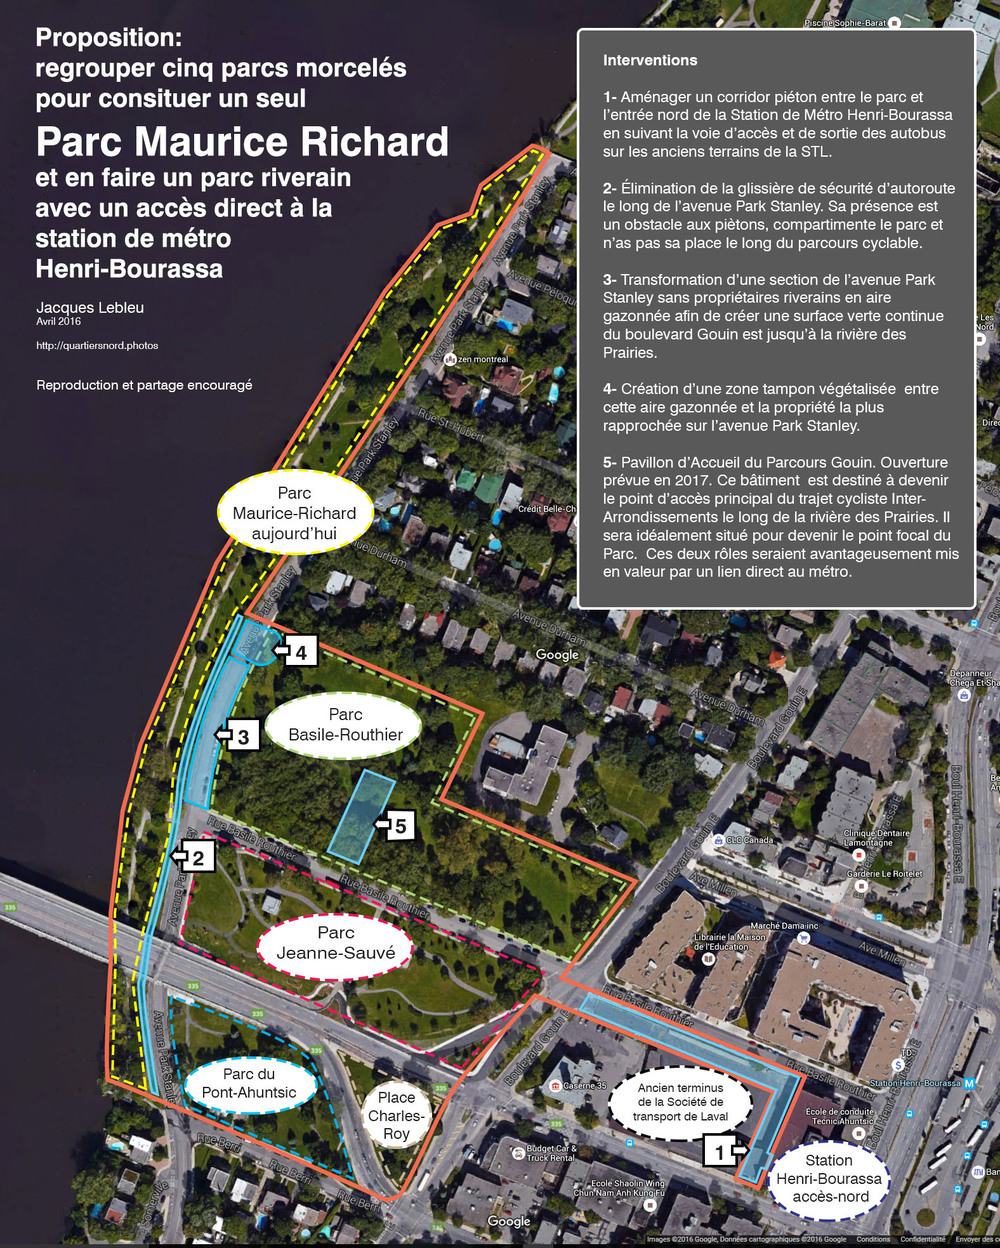 Proposition_Parc-Maurice-Richard.jpg